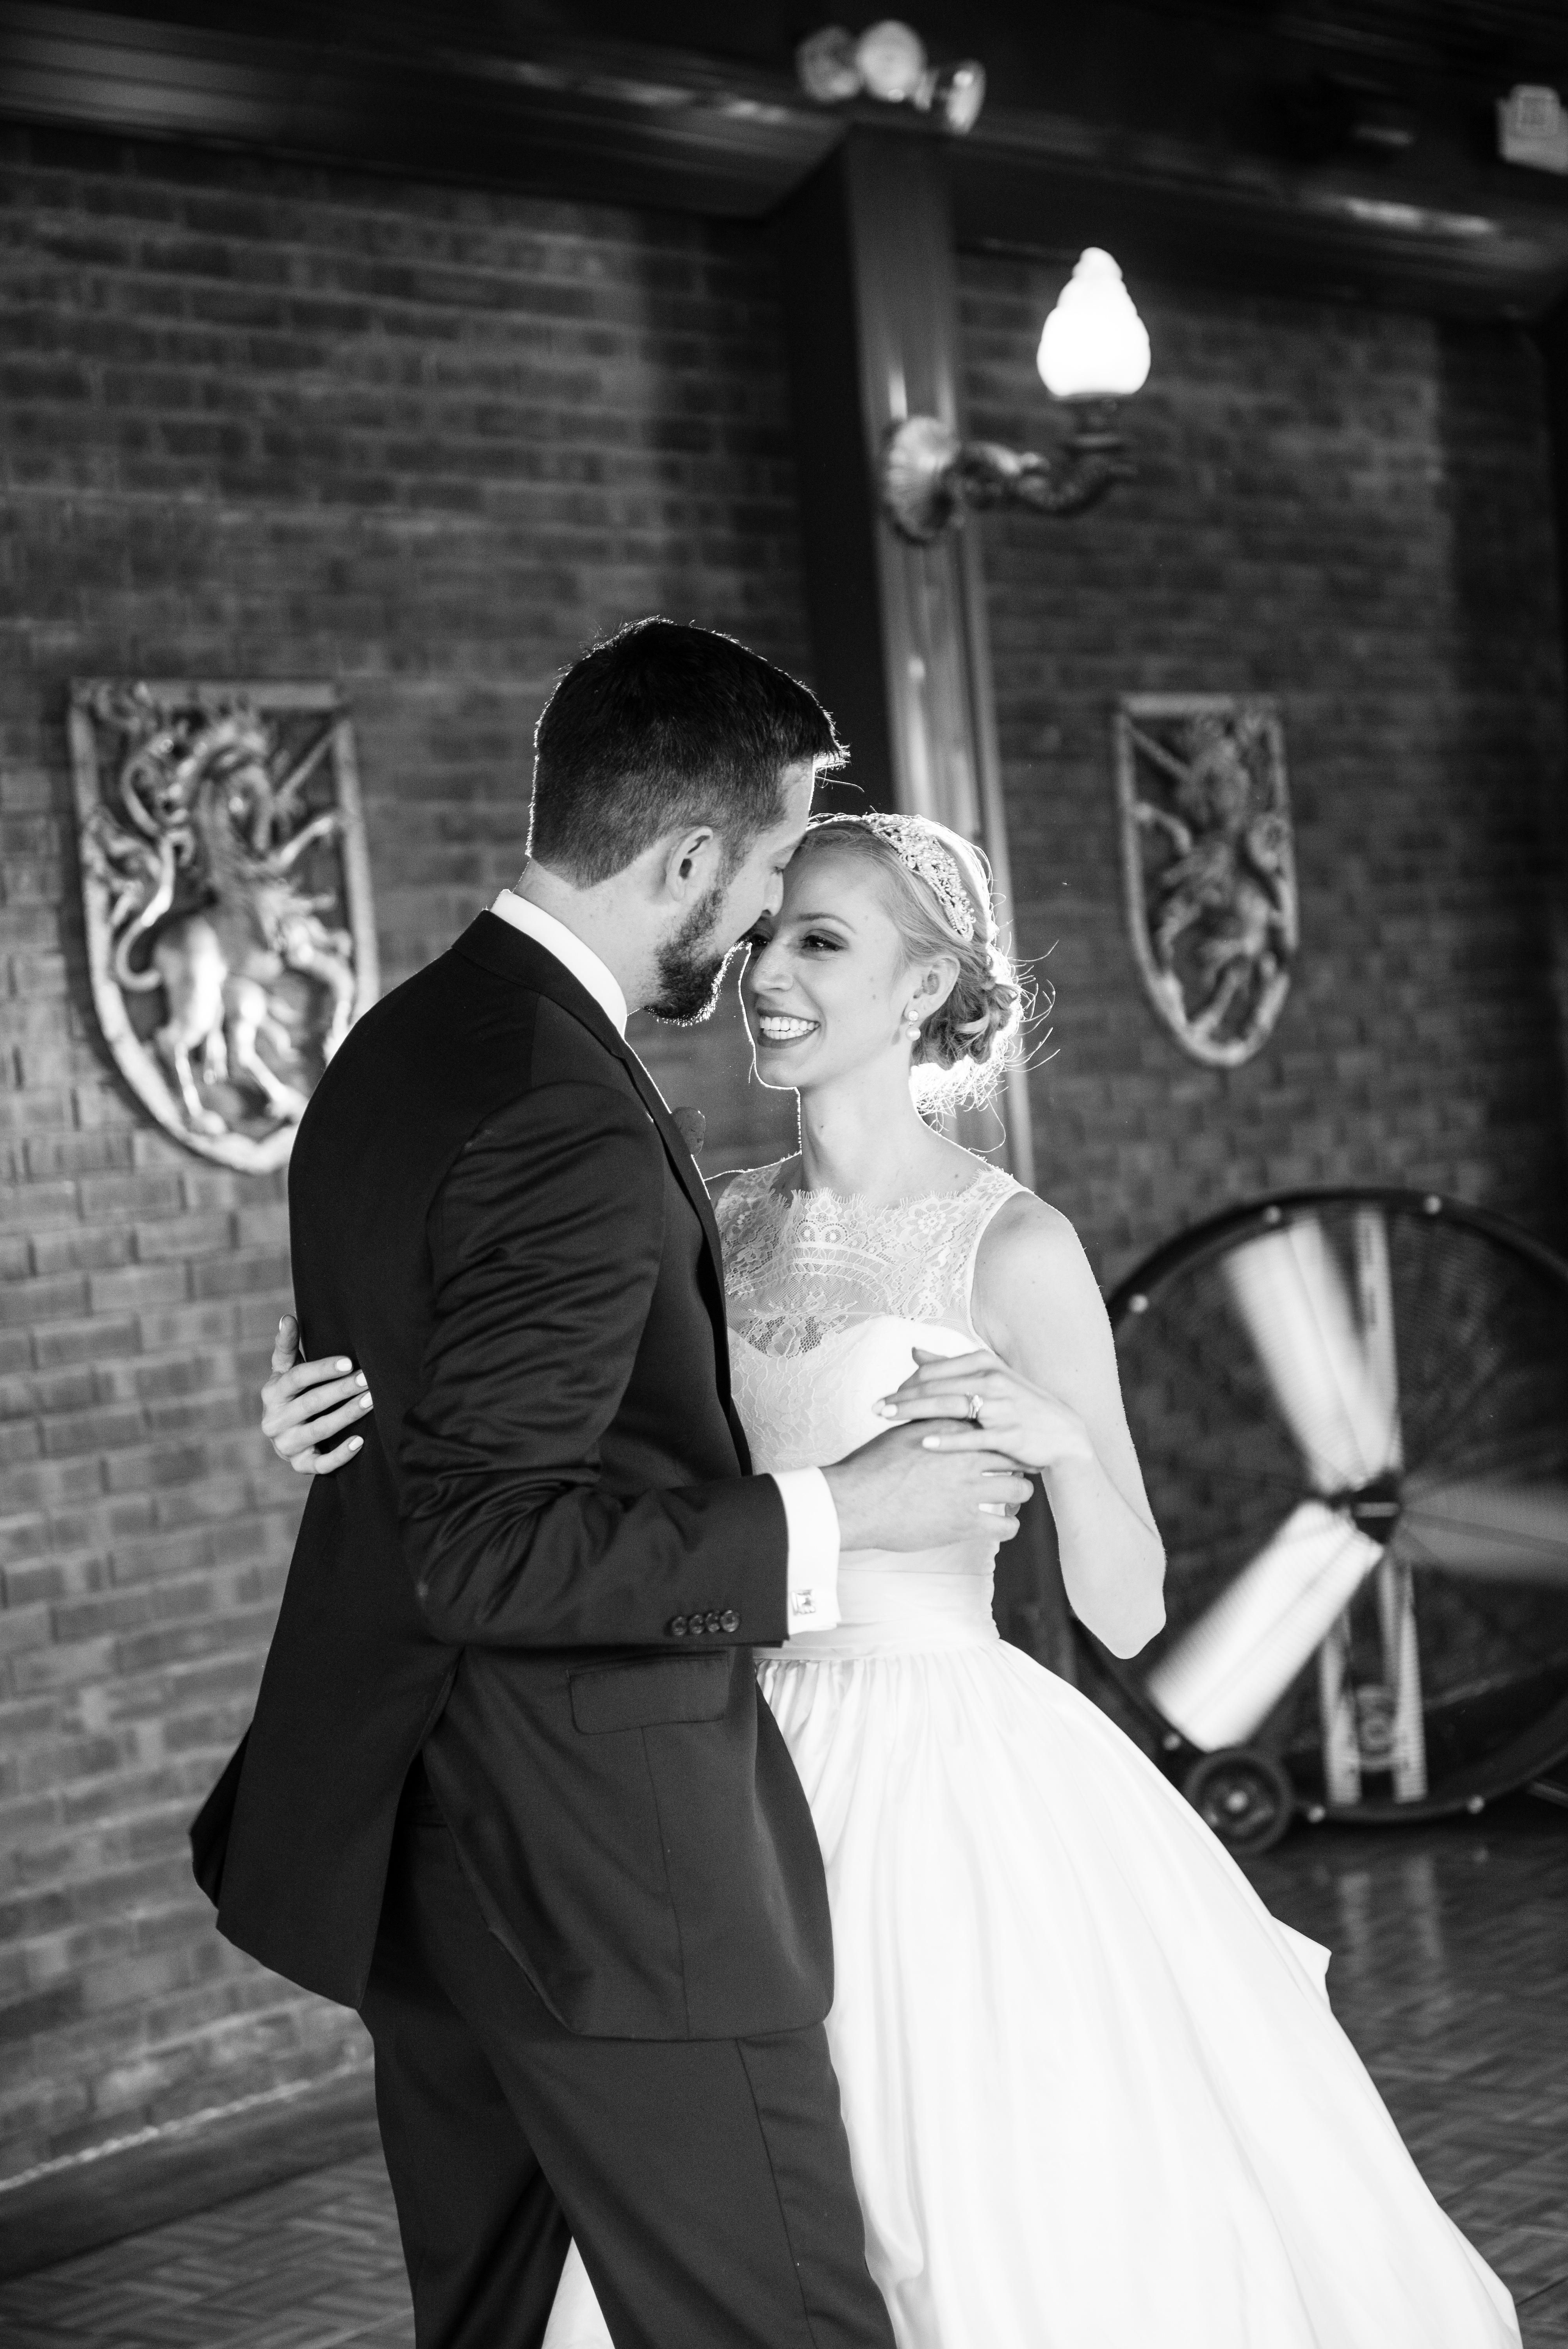 We love taking photos of your wedding day and especially love capturing the first dance. #completewedo #partywithcomplete #weddingphotography #wedding #weddingdj #weddingdance